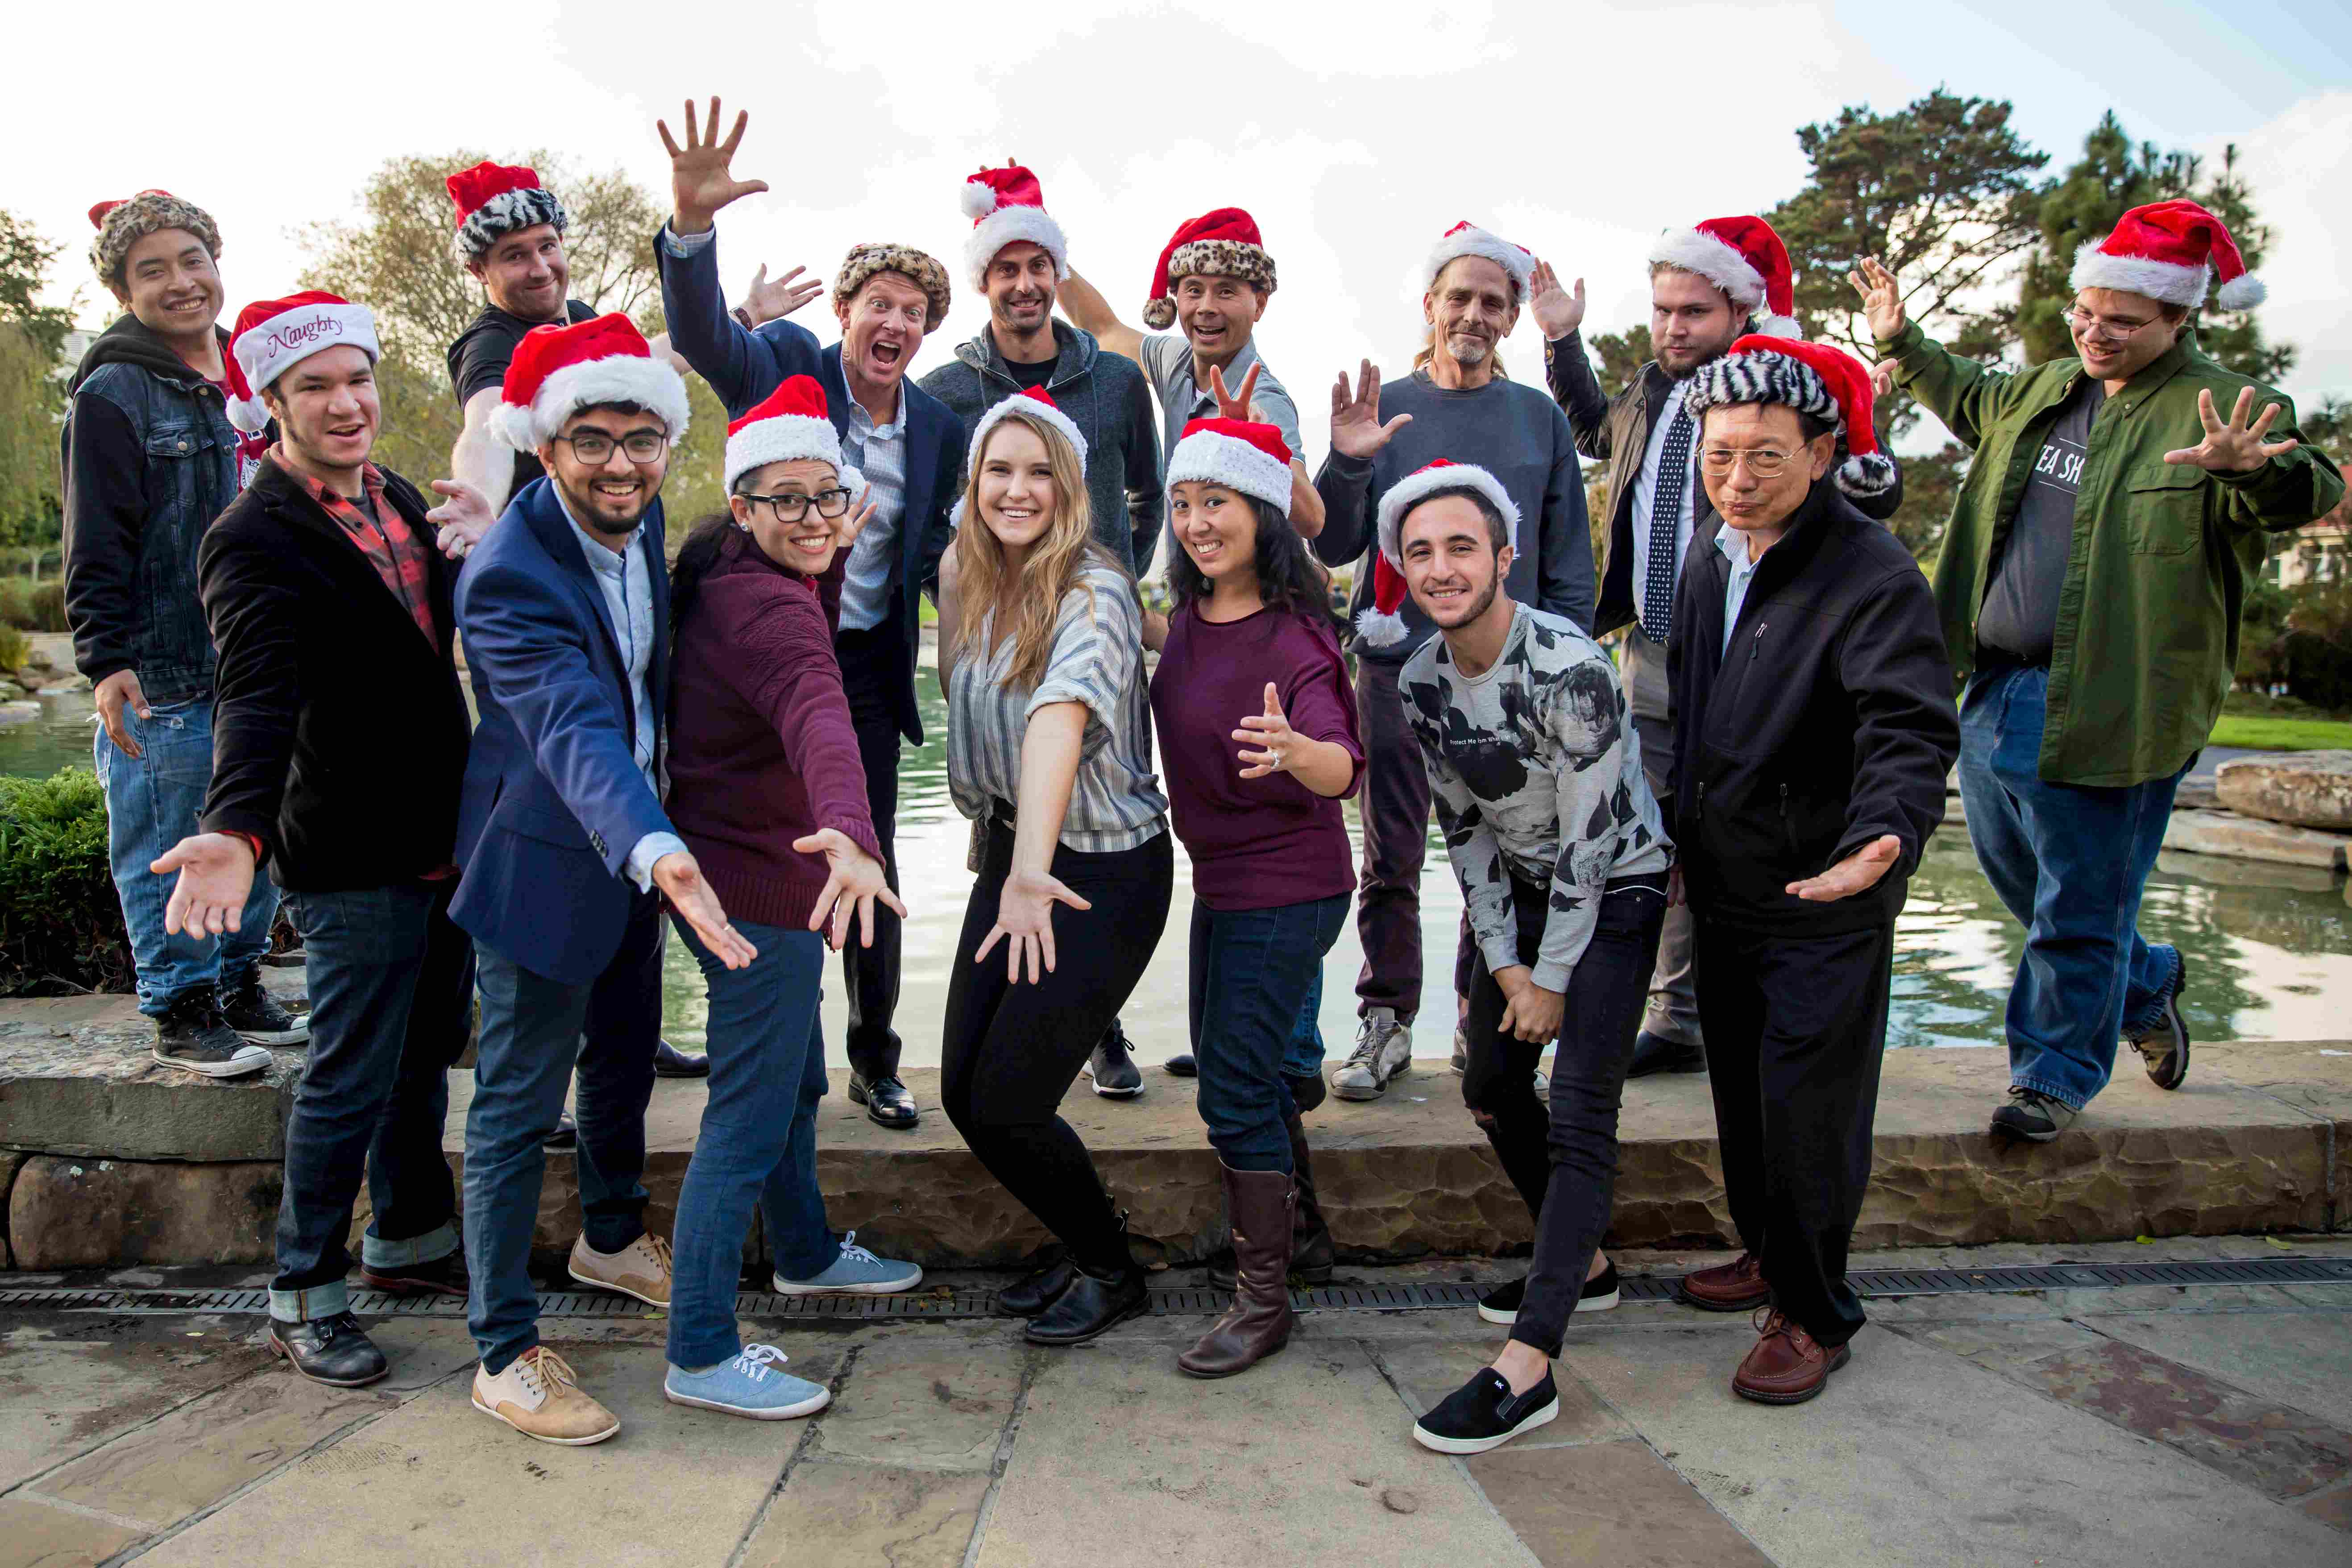 Group photo of Urbanests team wearing holiday hats.